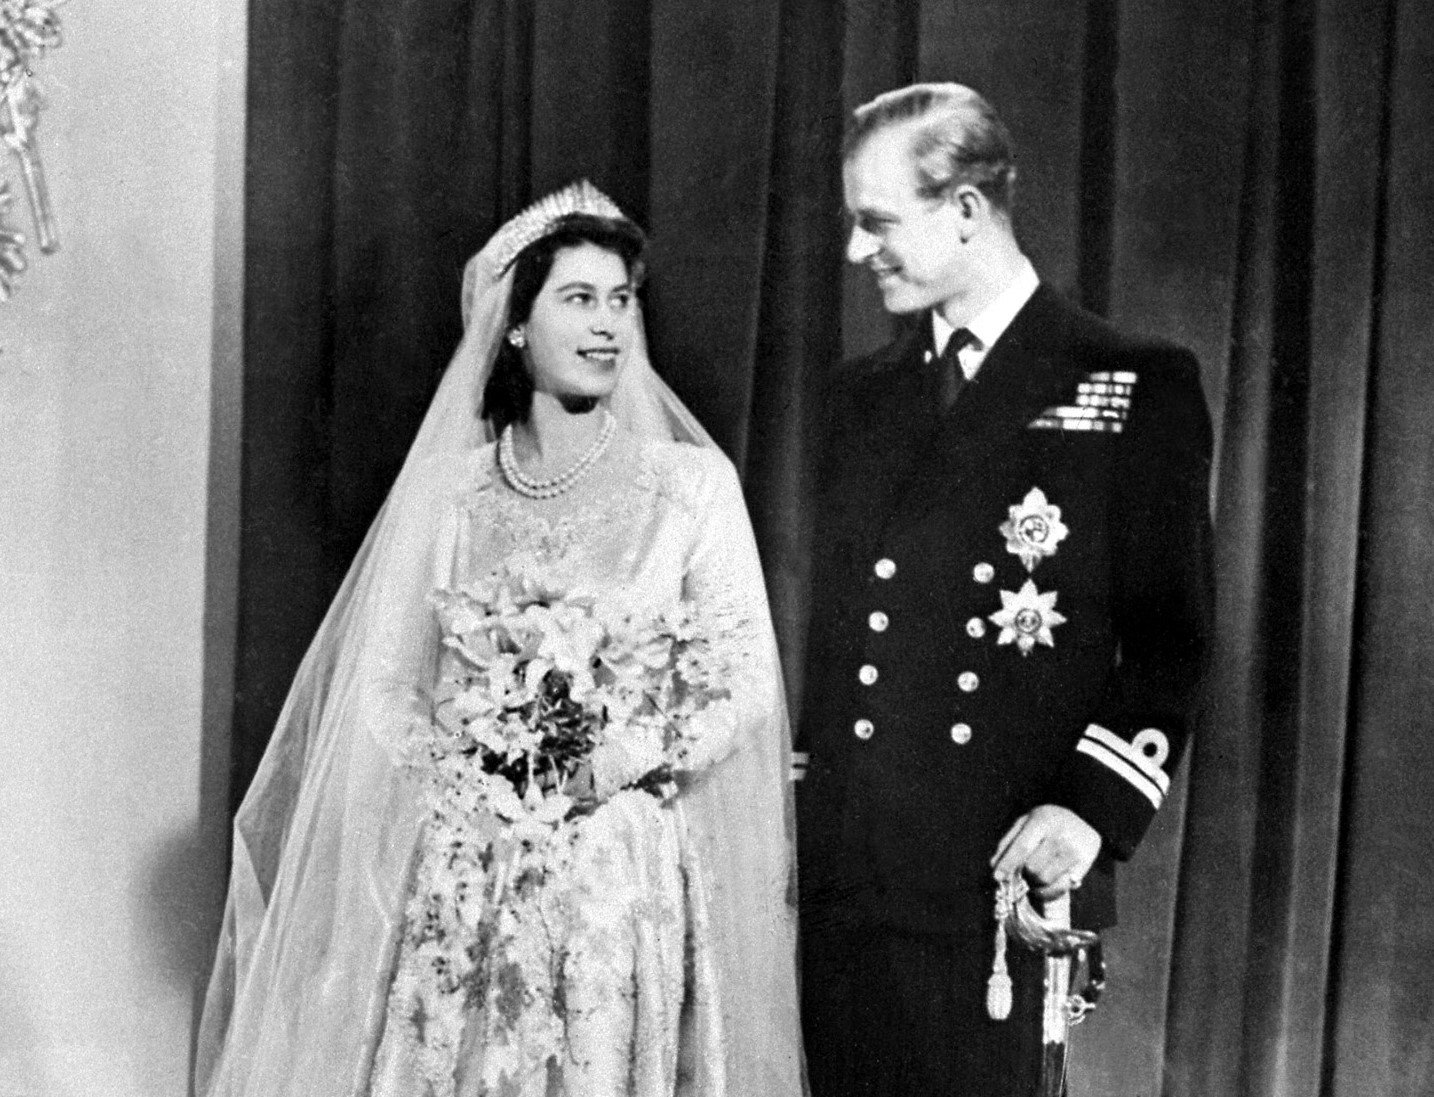 Princess/Queen Elizabeth II Wedding to Prince Phillip